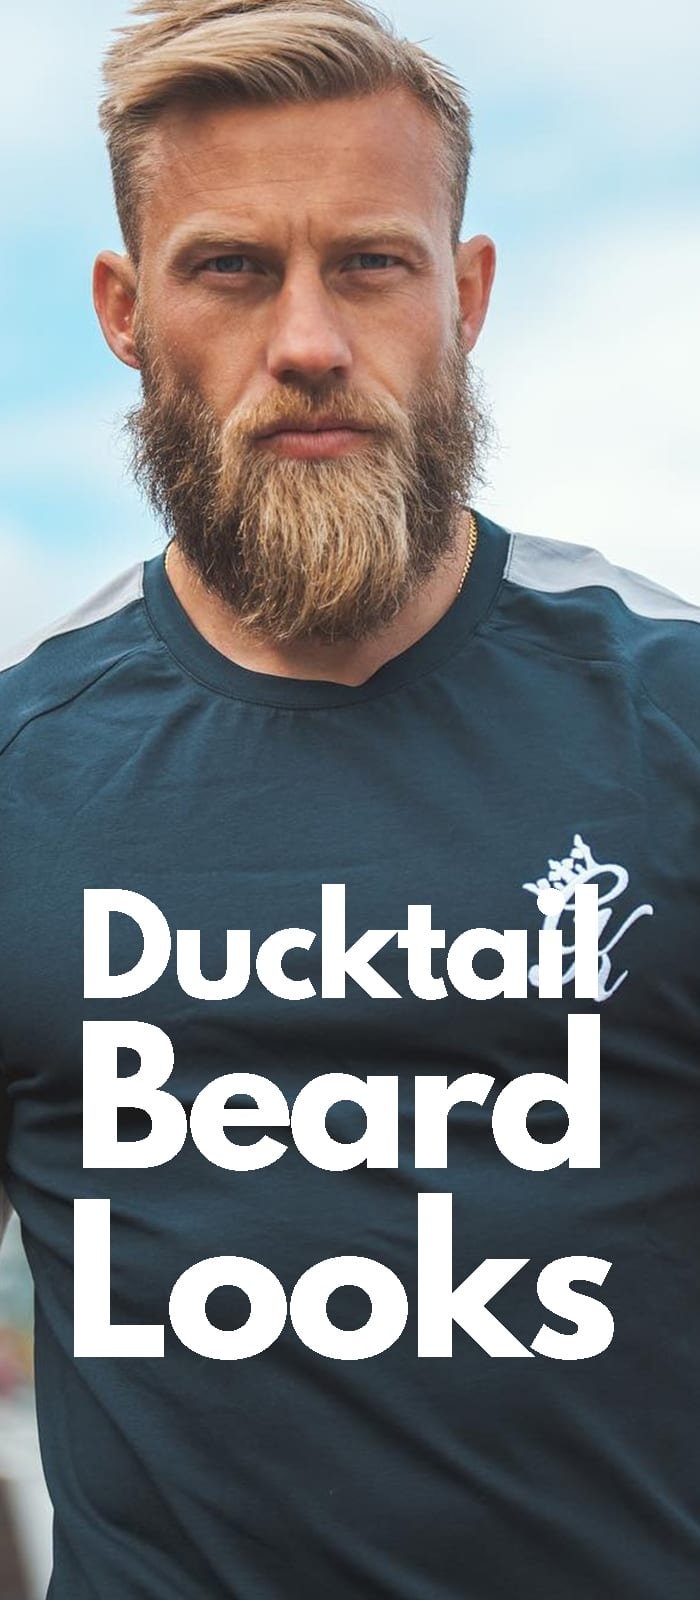 Ducktail Beard Look.